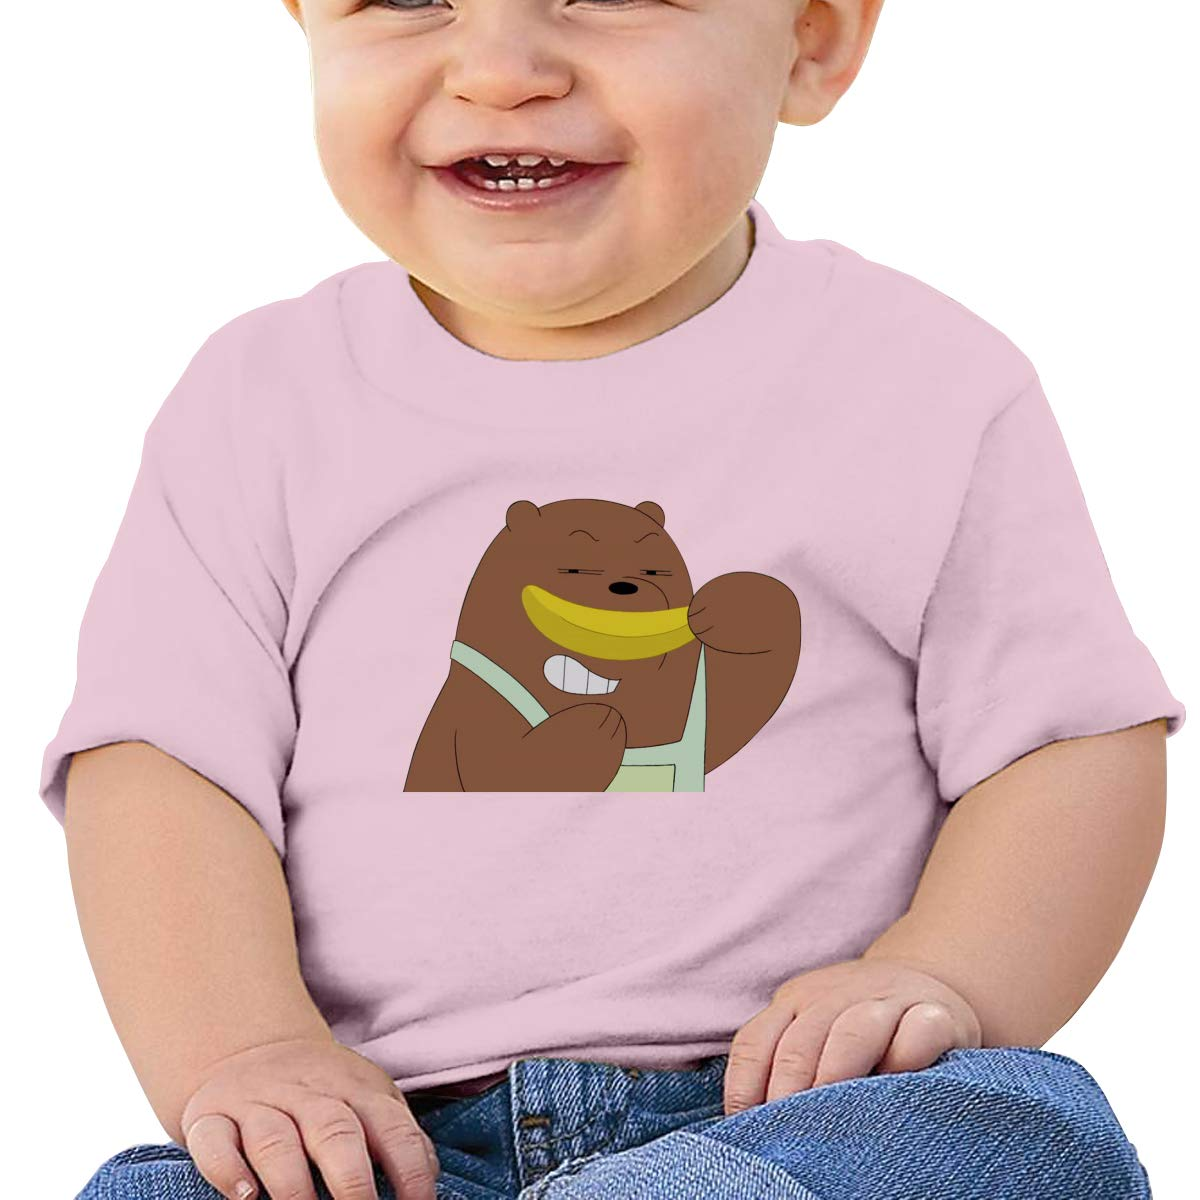 FeiZhiLin We Bare Bears Eat Banana Baby Tee Design Soft T-Shirts for Toddler Black